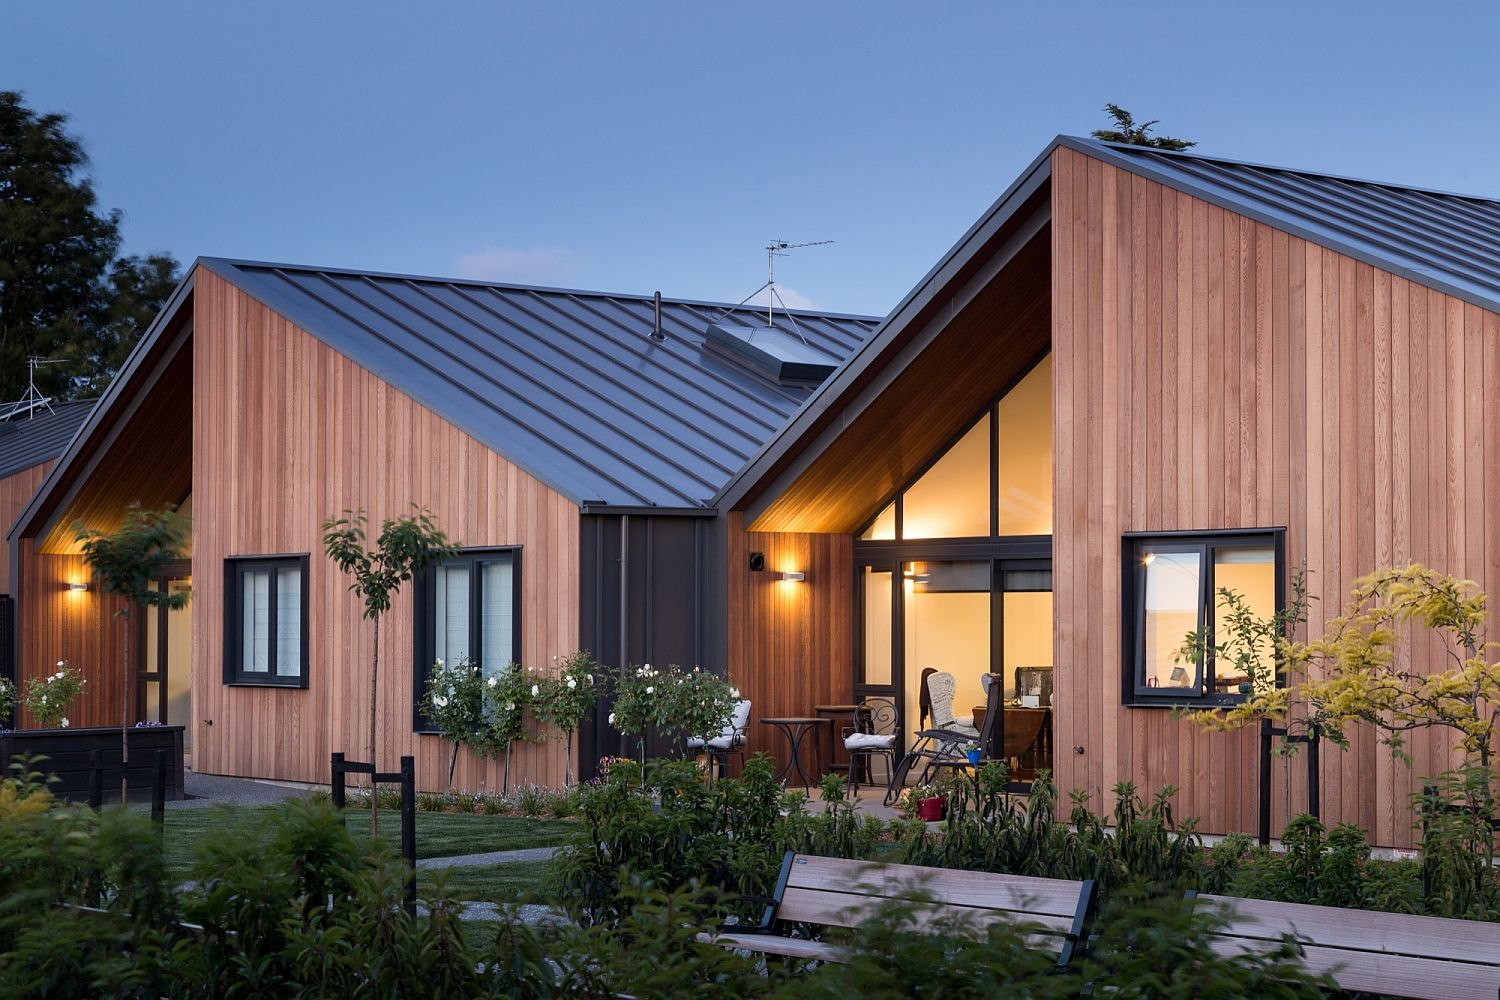 Design-of-the-homes-encourages-interactivity-and-outdoor-living